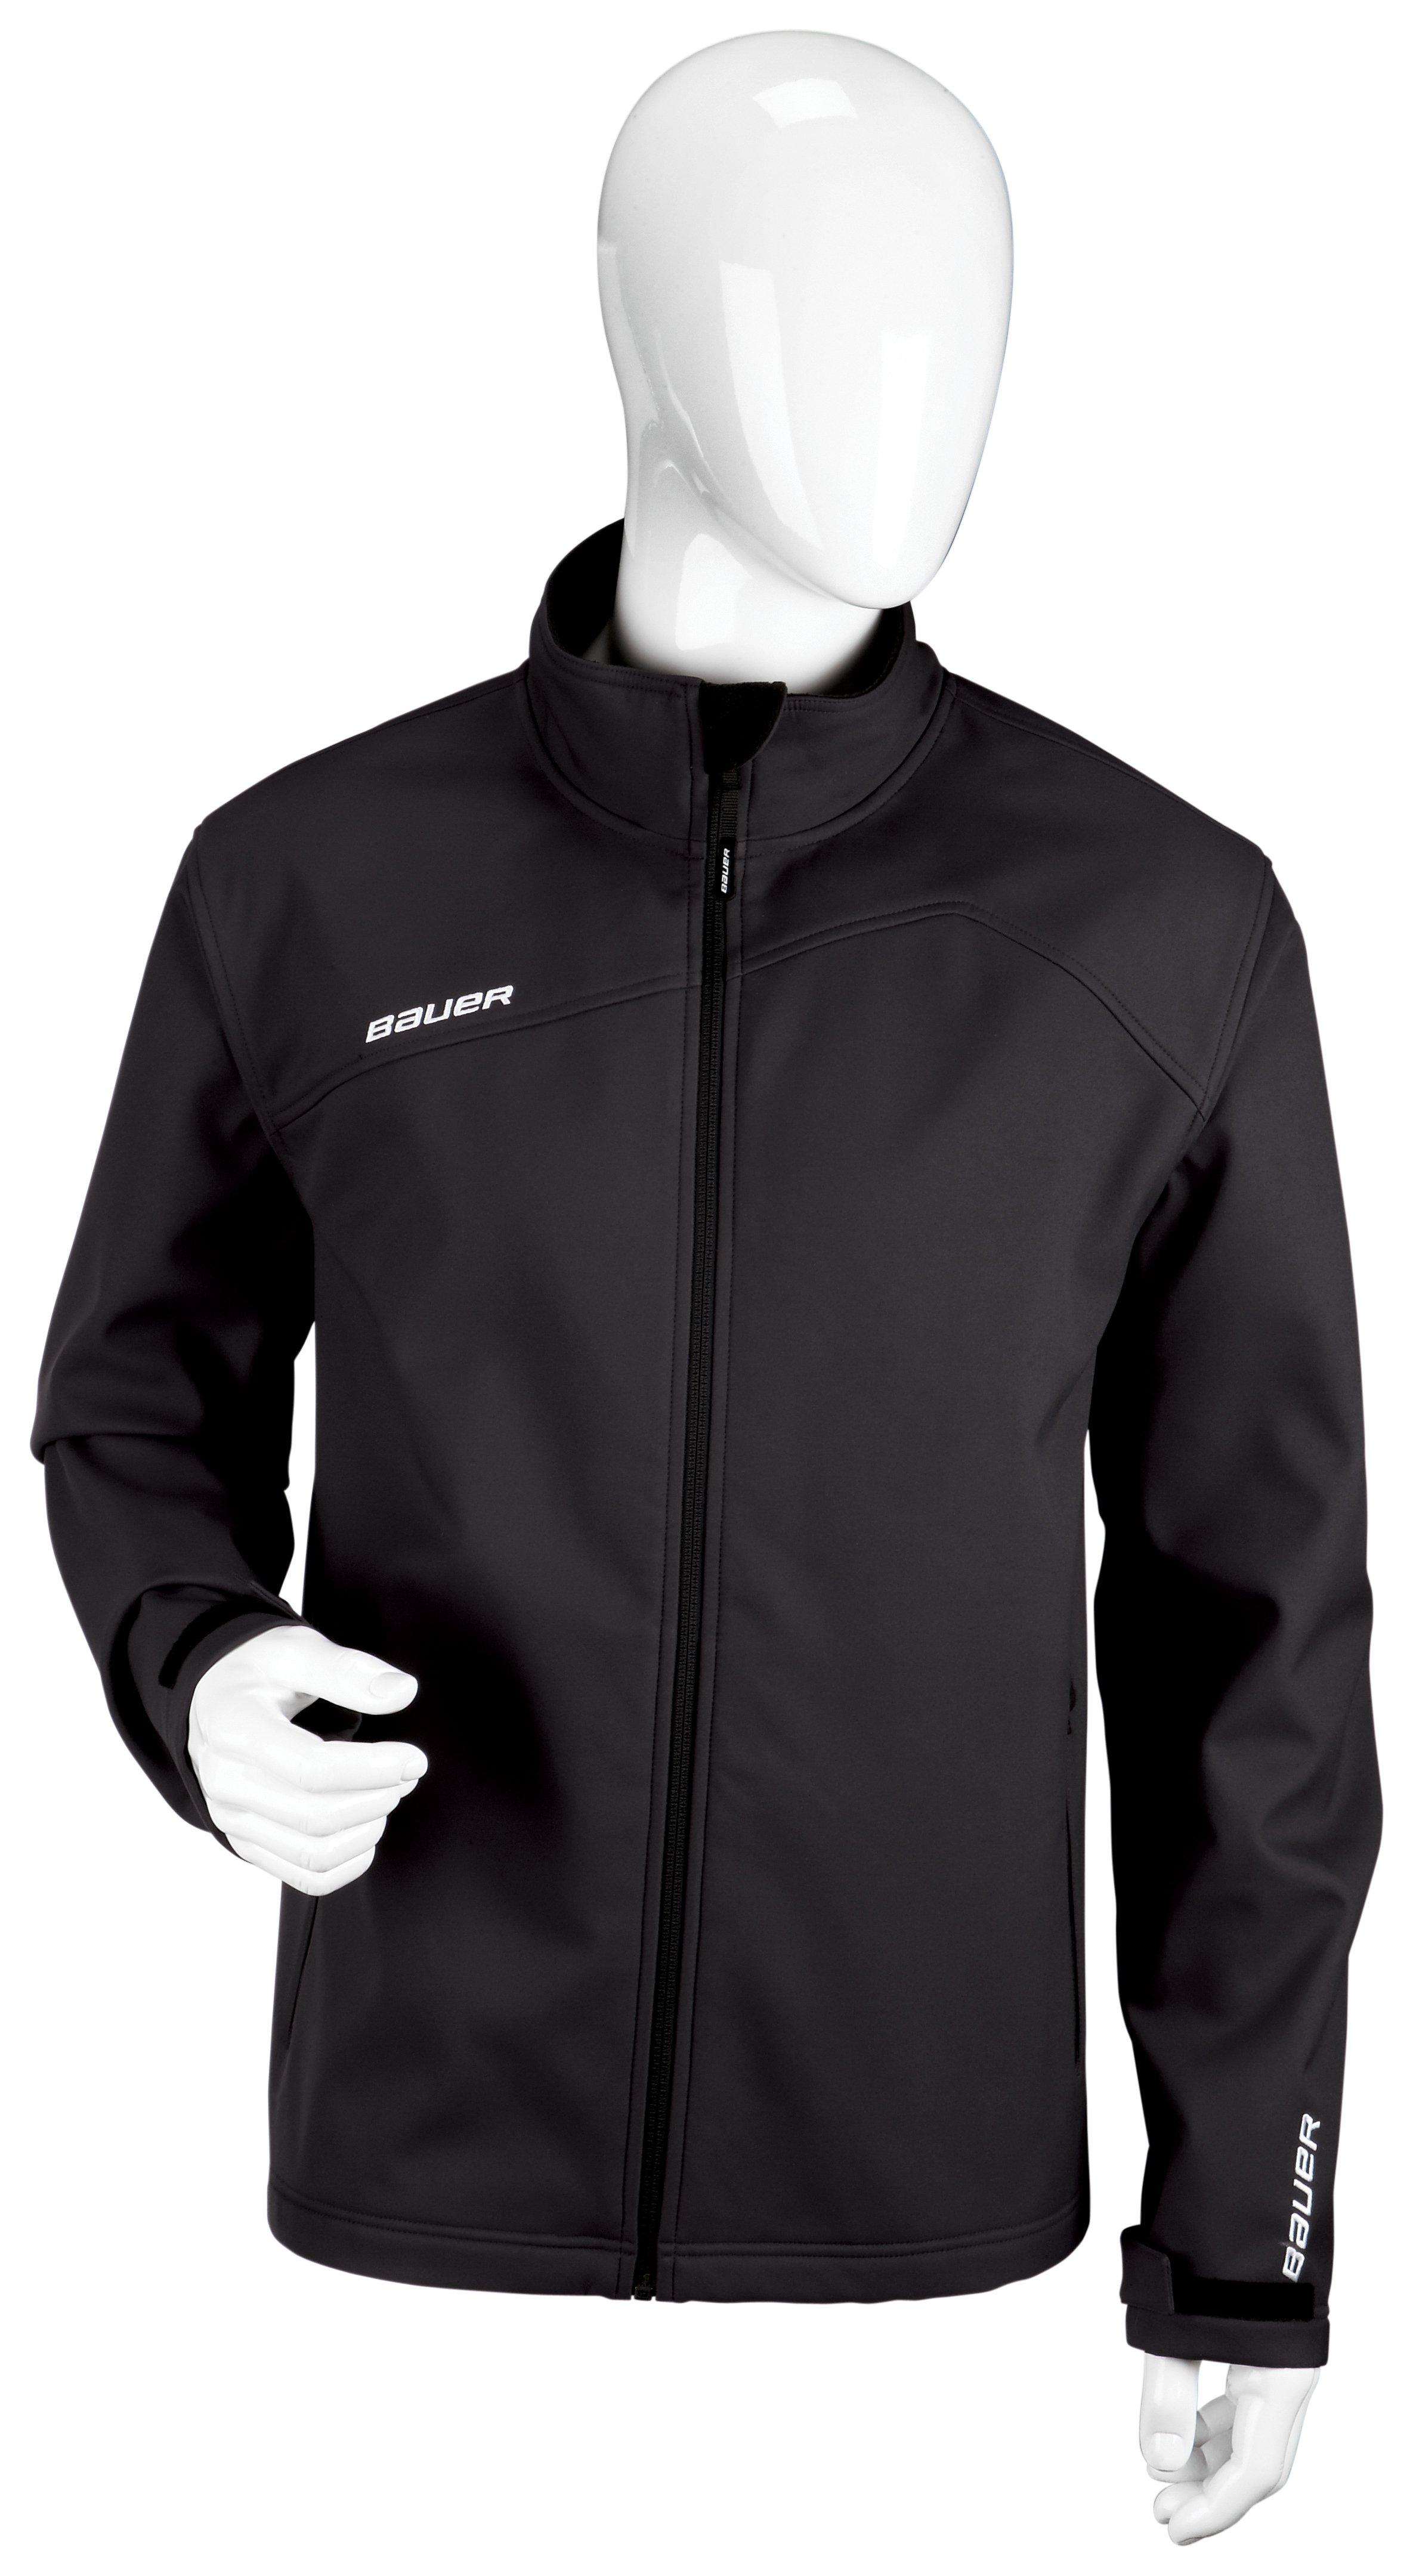 Team Softshell Jacket,,Размер M